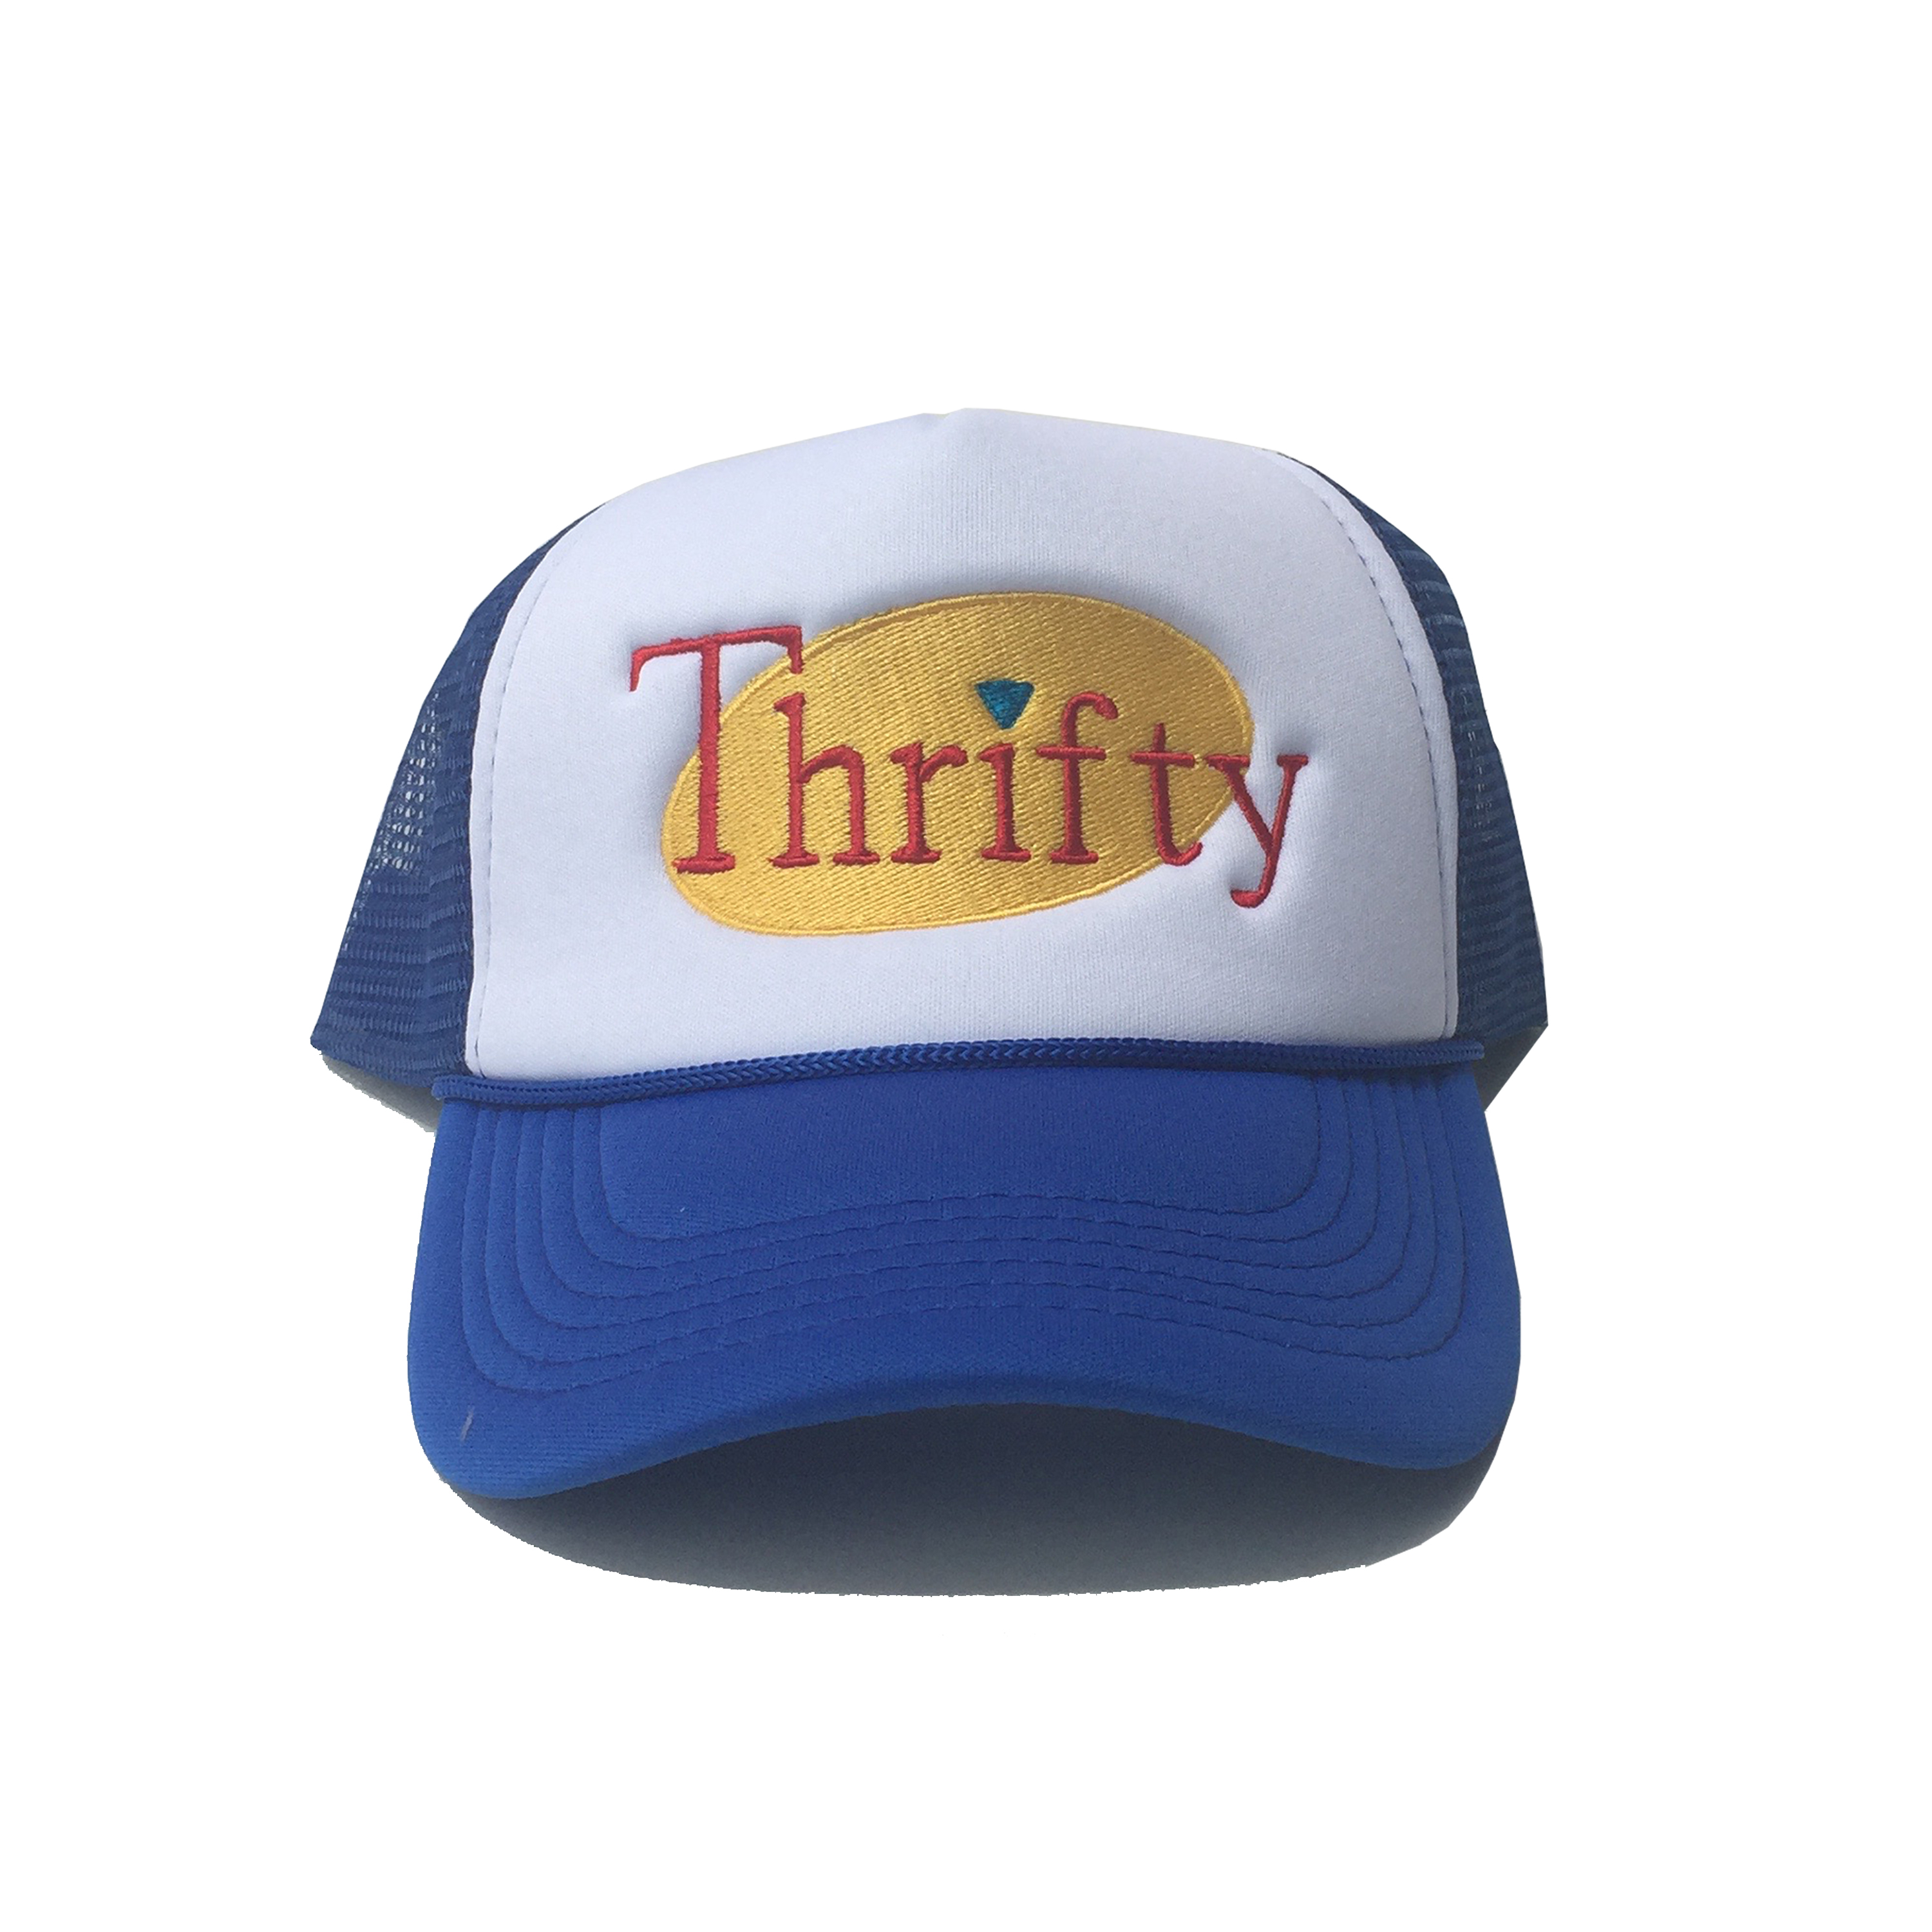 2e74e7a6ee4 Thrifty 20seinfeld 20trucker 20hat 20(front) original